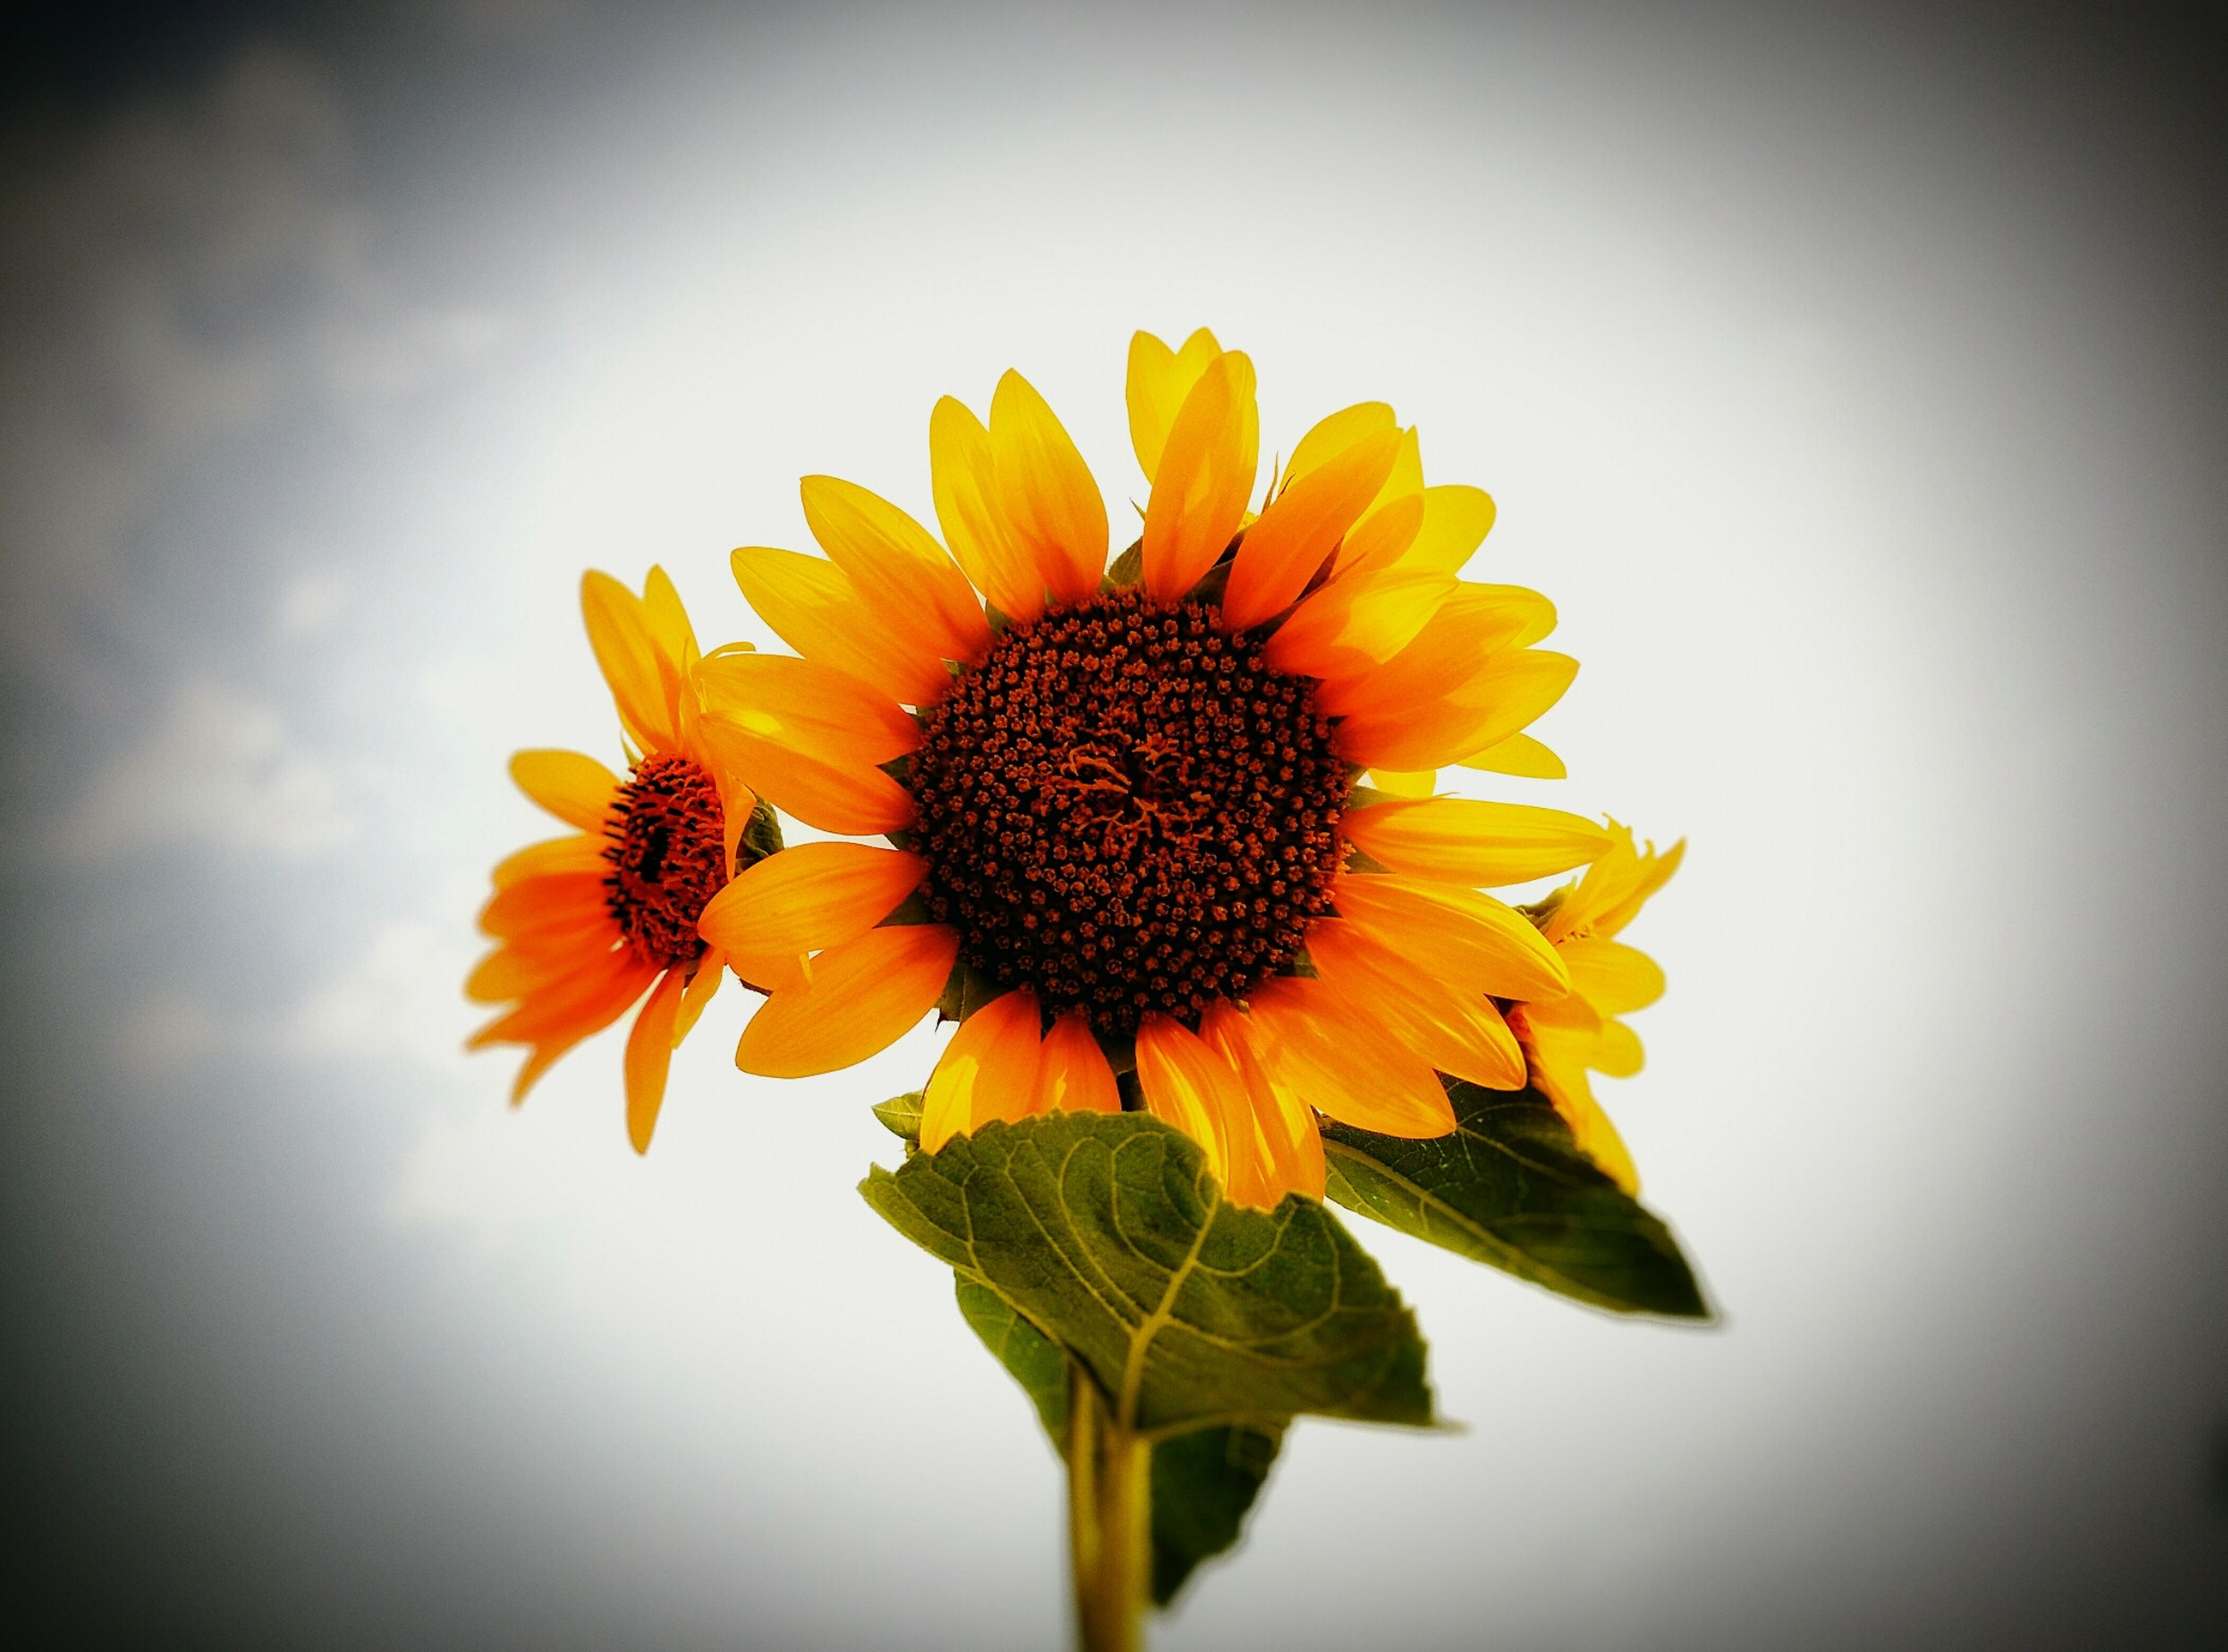 flower, petal, flower head, freshness, fragility, yellow, sunflower, pollen, beauty in nature, growth, single flower, close-up, blooming, nature, plant, in bloom, sky, blossom, leaf, botany